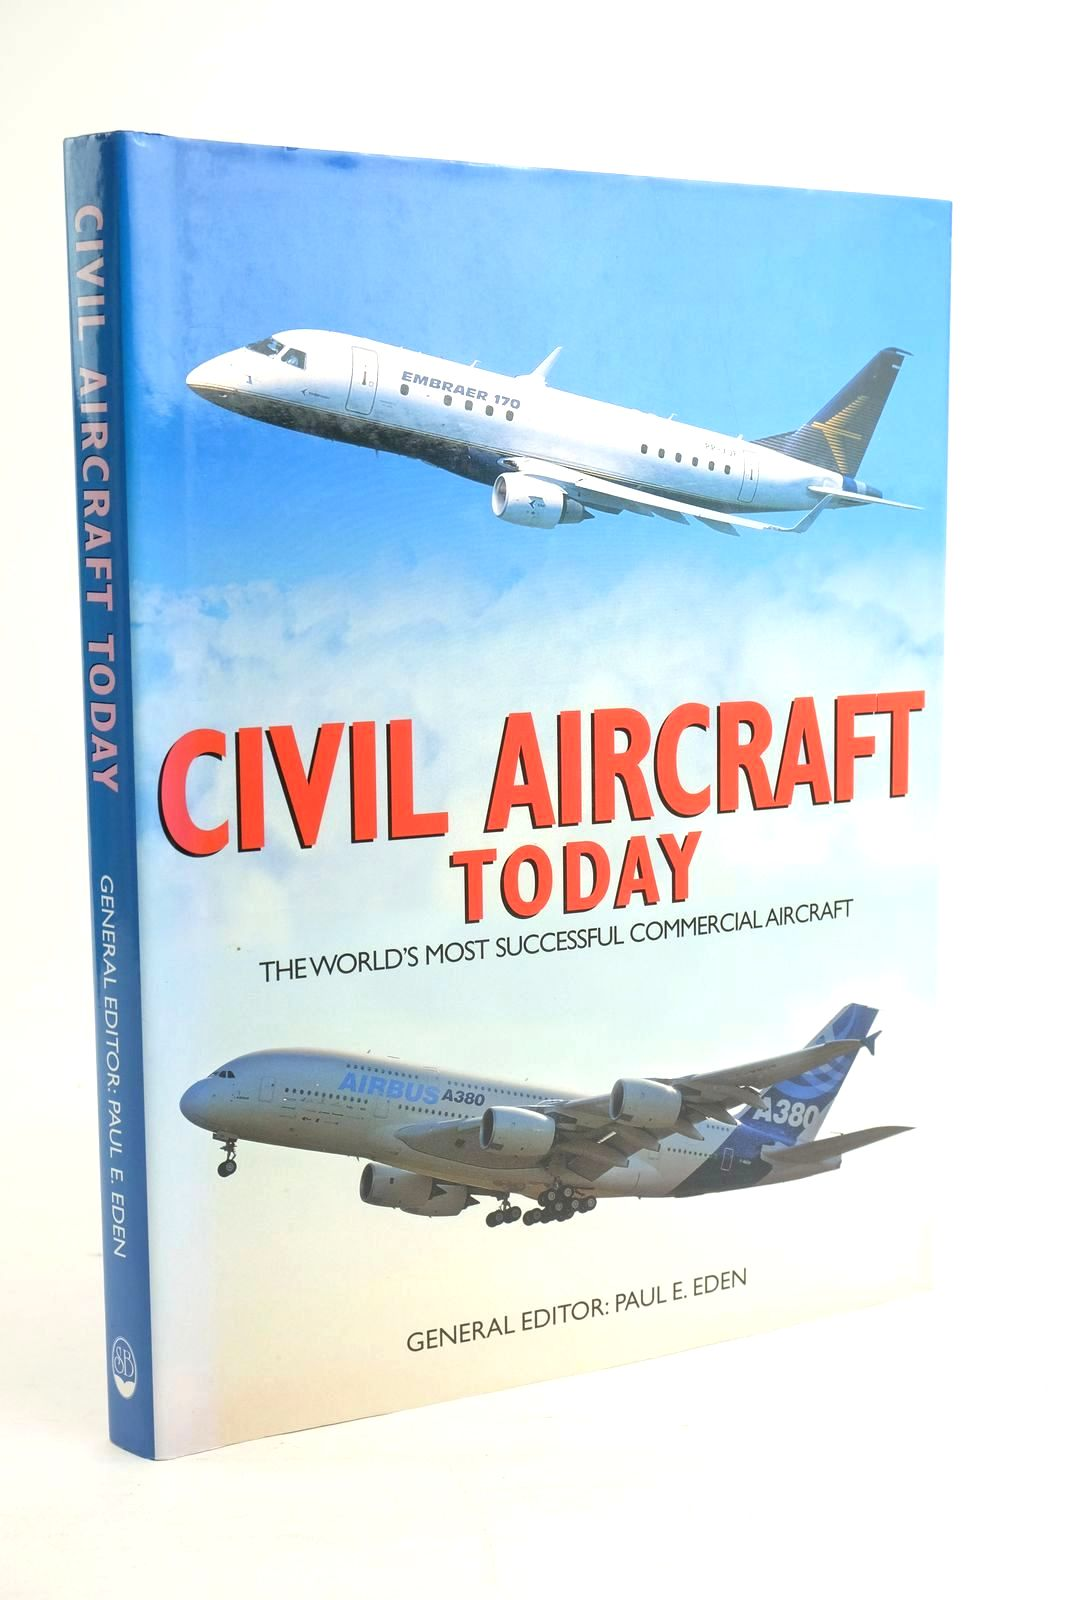 Photo of CIVIL AIRCRAFT TODAY written by Eden, Paul E. published by Silverdale Books (STOCK CODE: 1320141)  for sale by Stella & Rose's Books